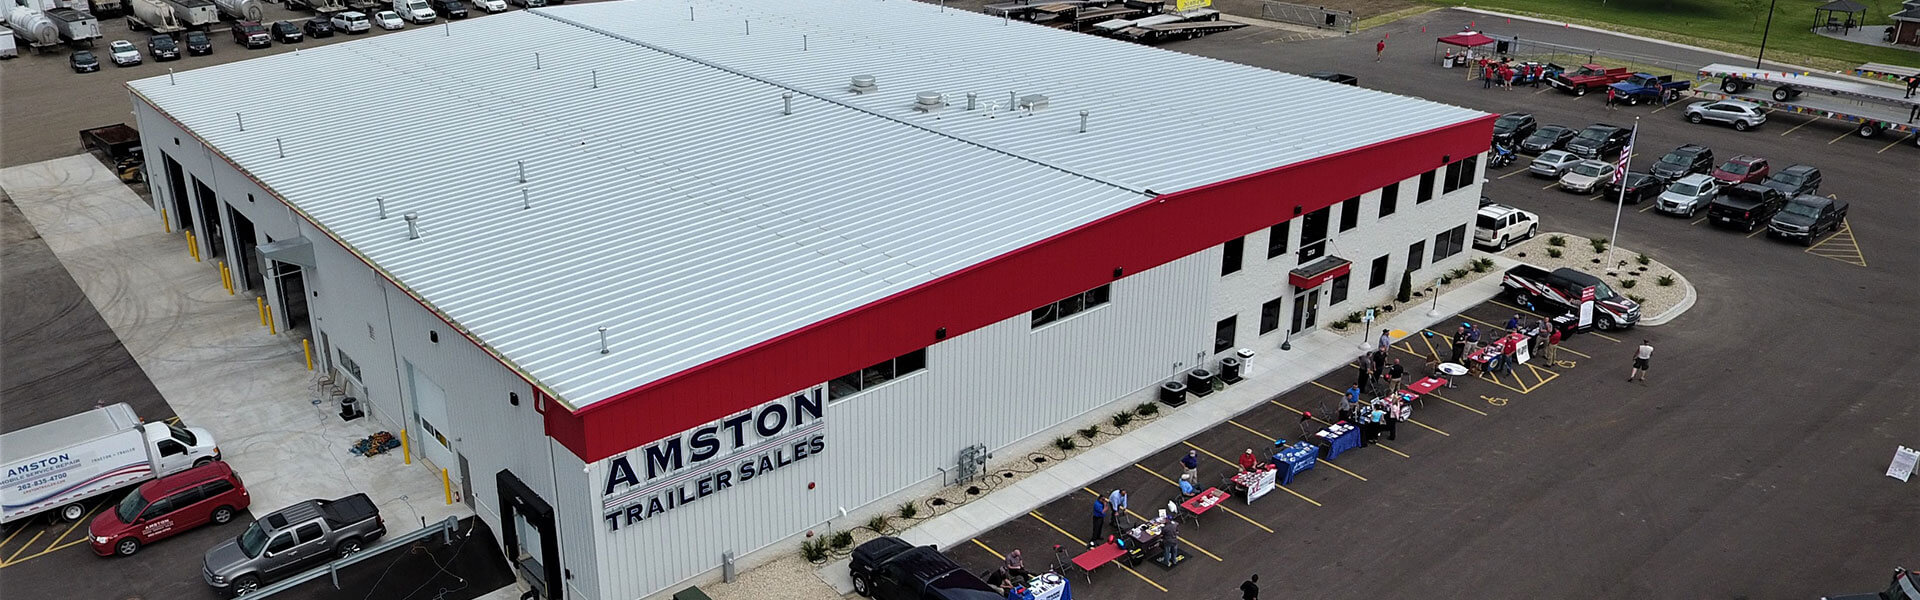 Amston Trailer Sales Drone Shot